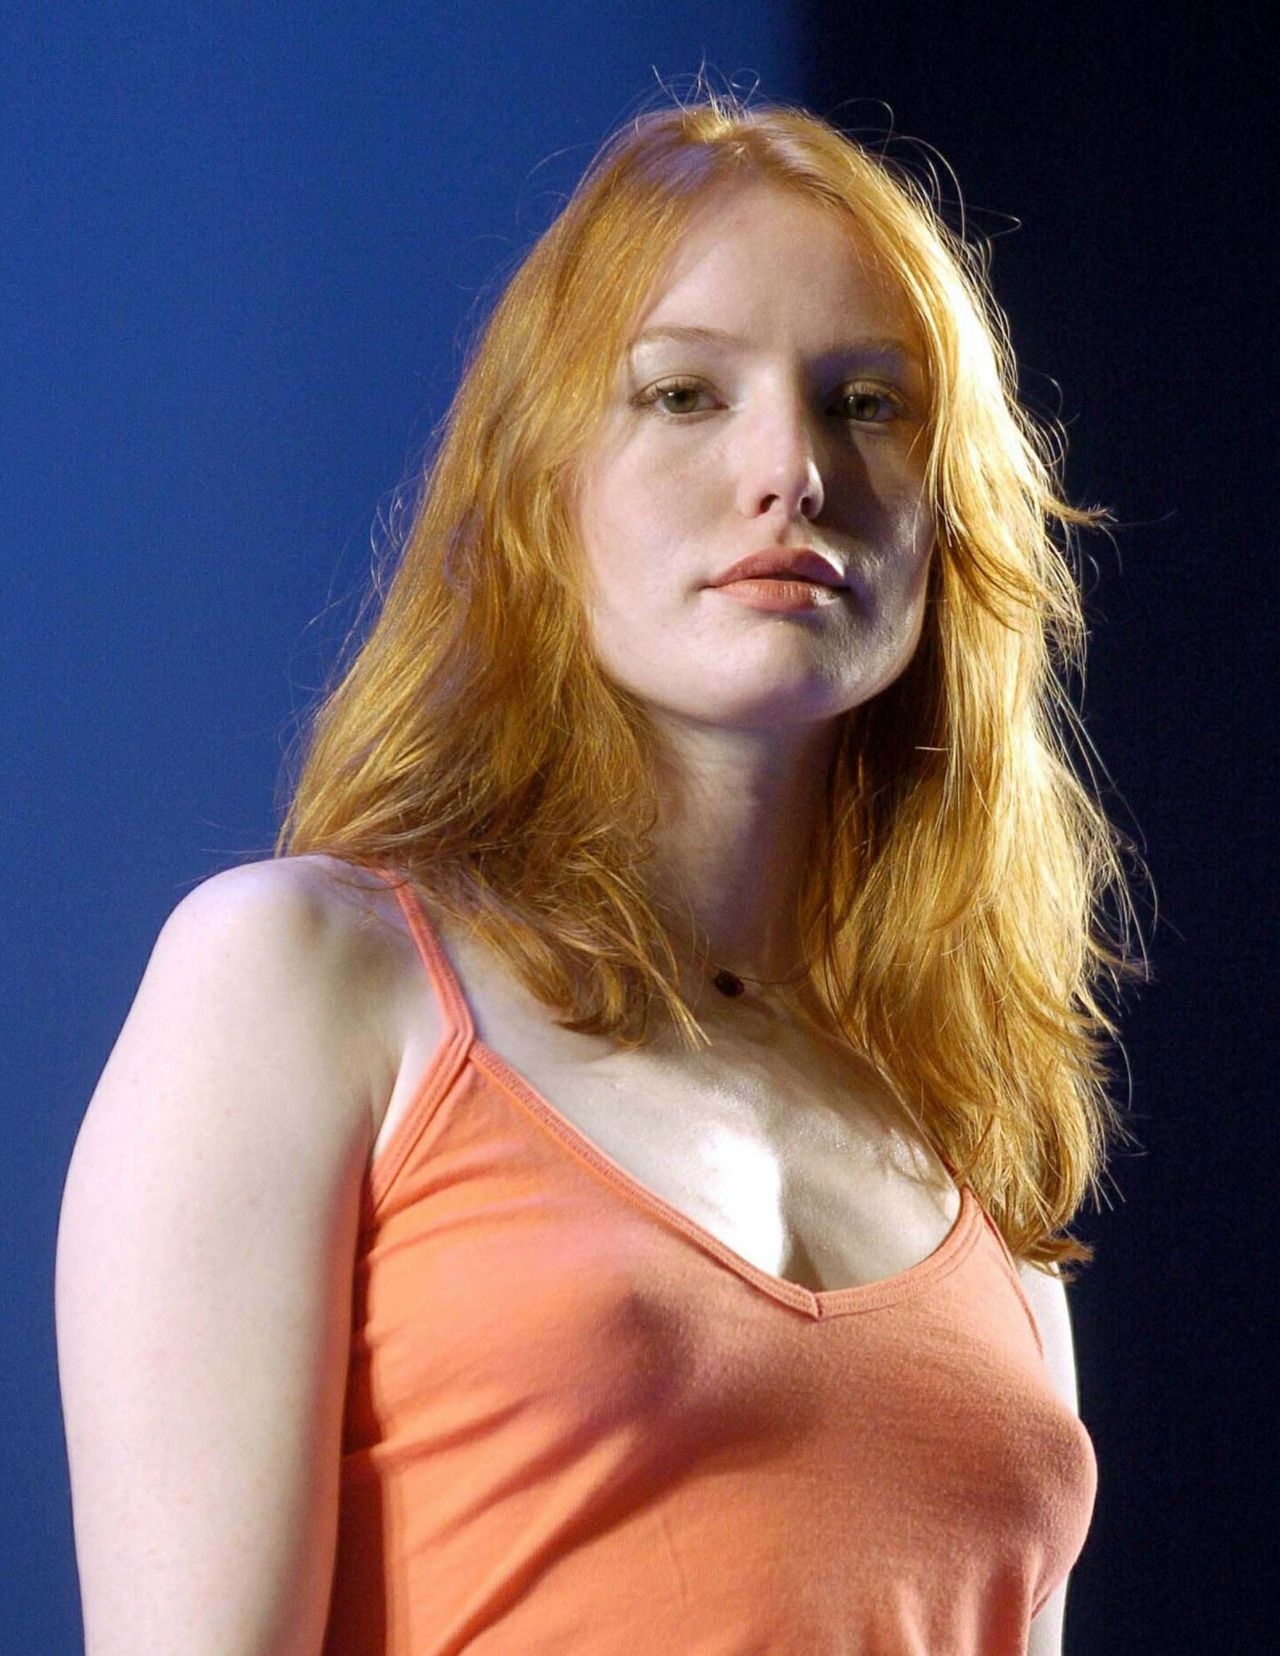 Bikini Boobs Alicia Witt naked photo 2017